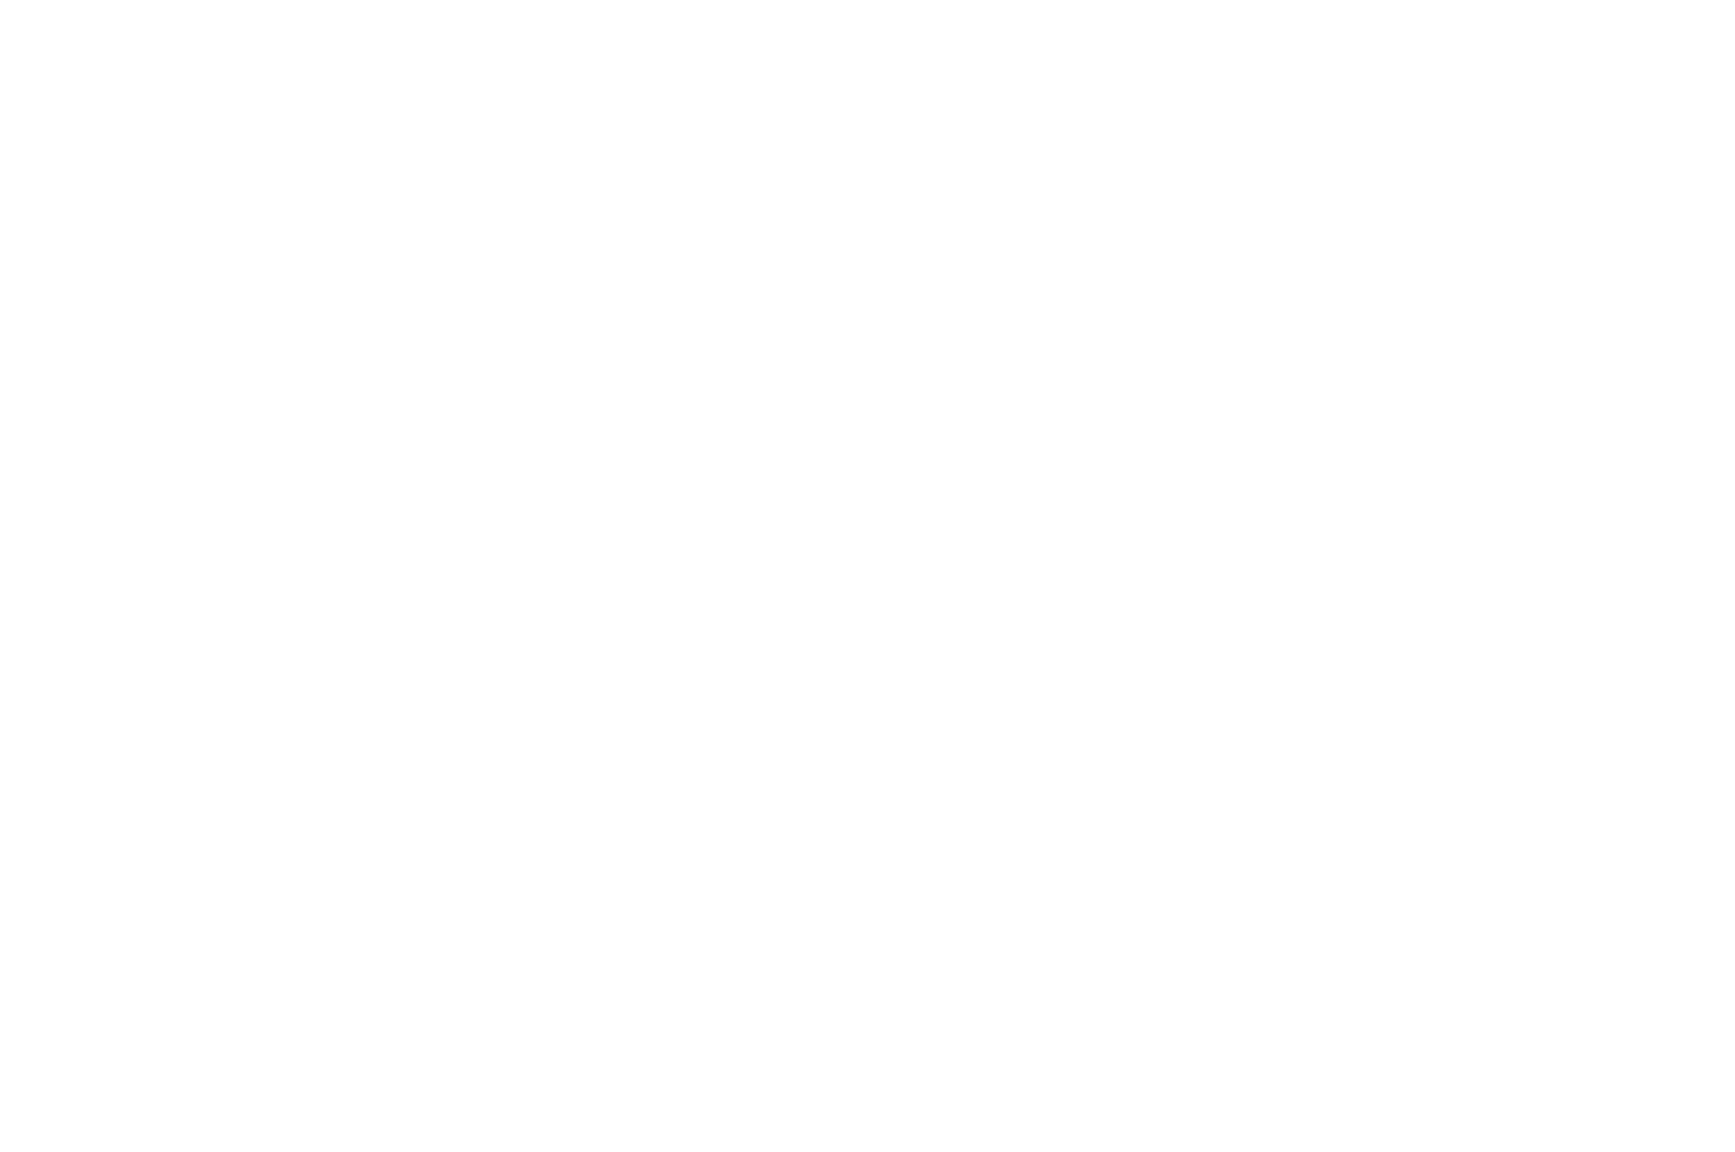 OFFICIAL SELECTION - Way Down Film Festival - 2017 (1).png